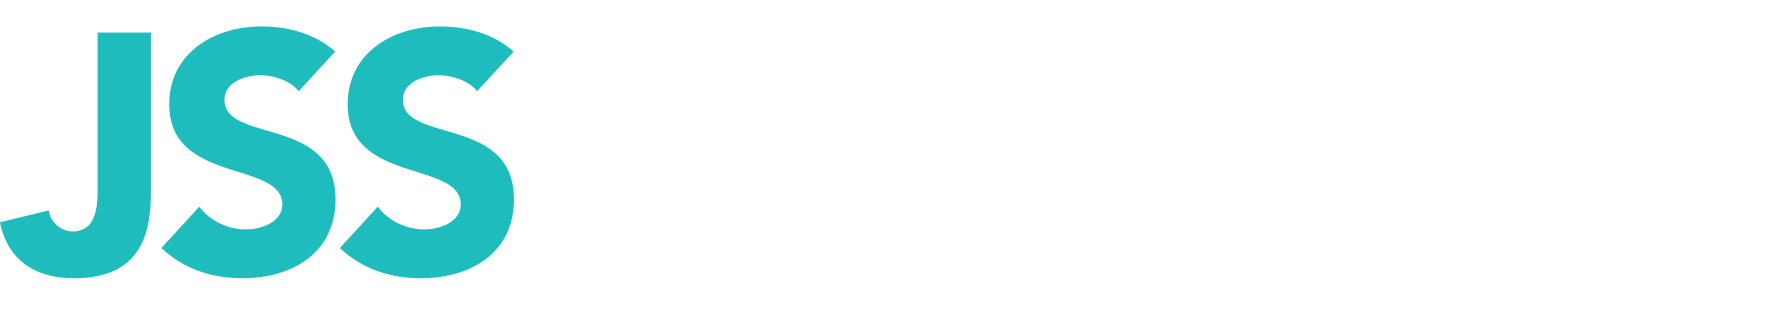 Jay Stone Sales Associates, Inc.